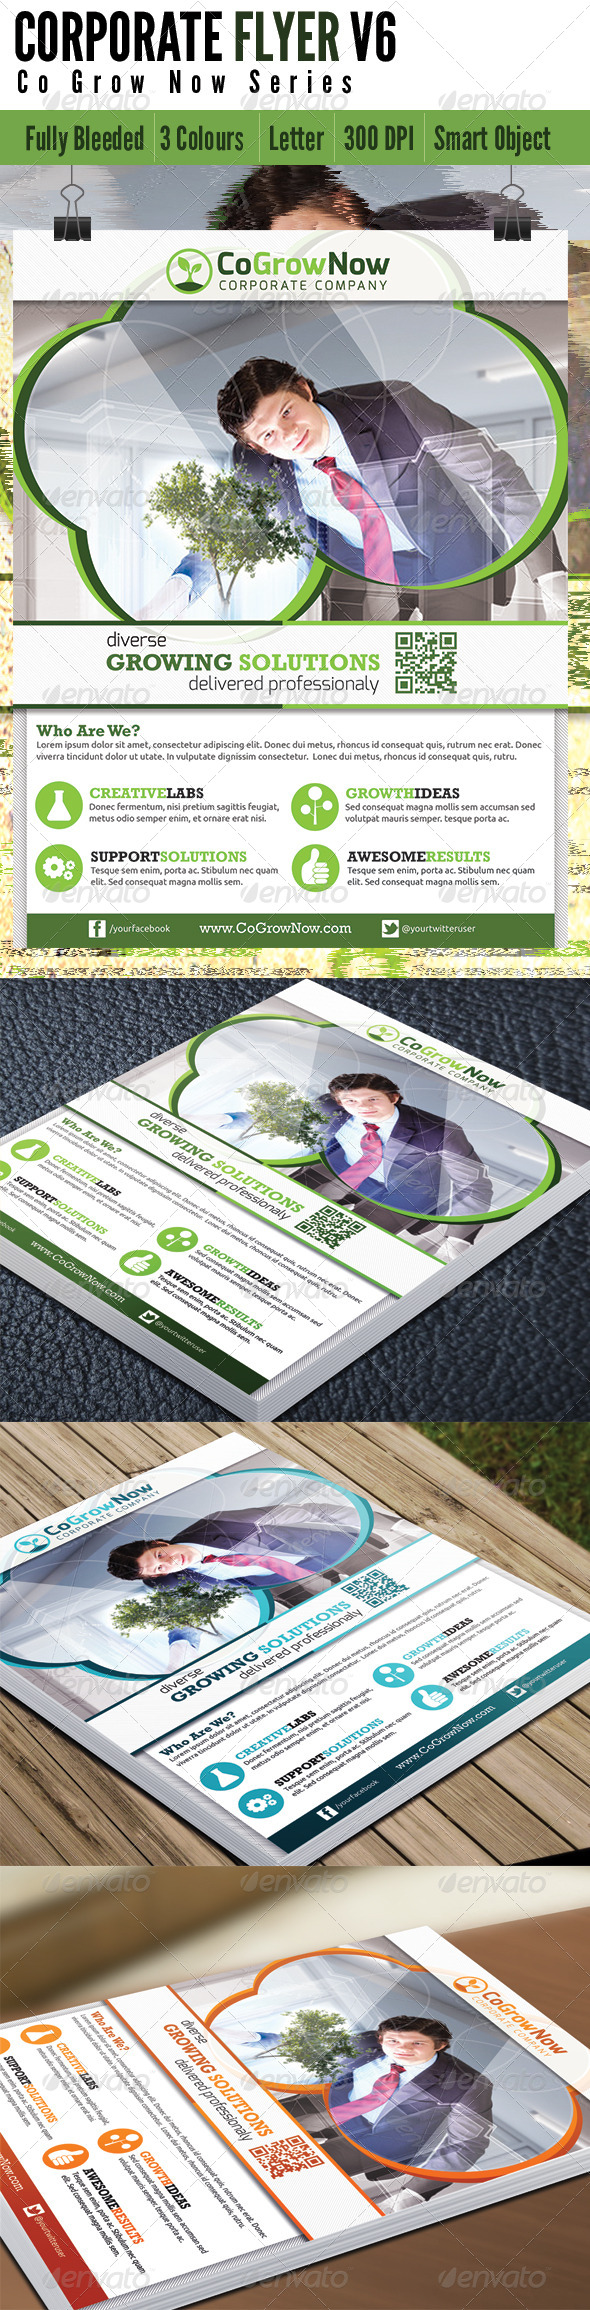 Corporate Flyer V6 - Corporate Flyers